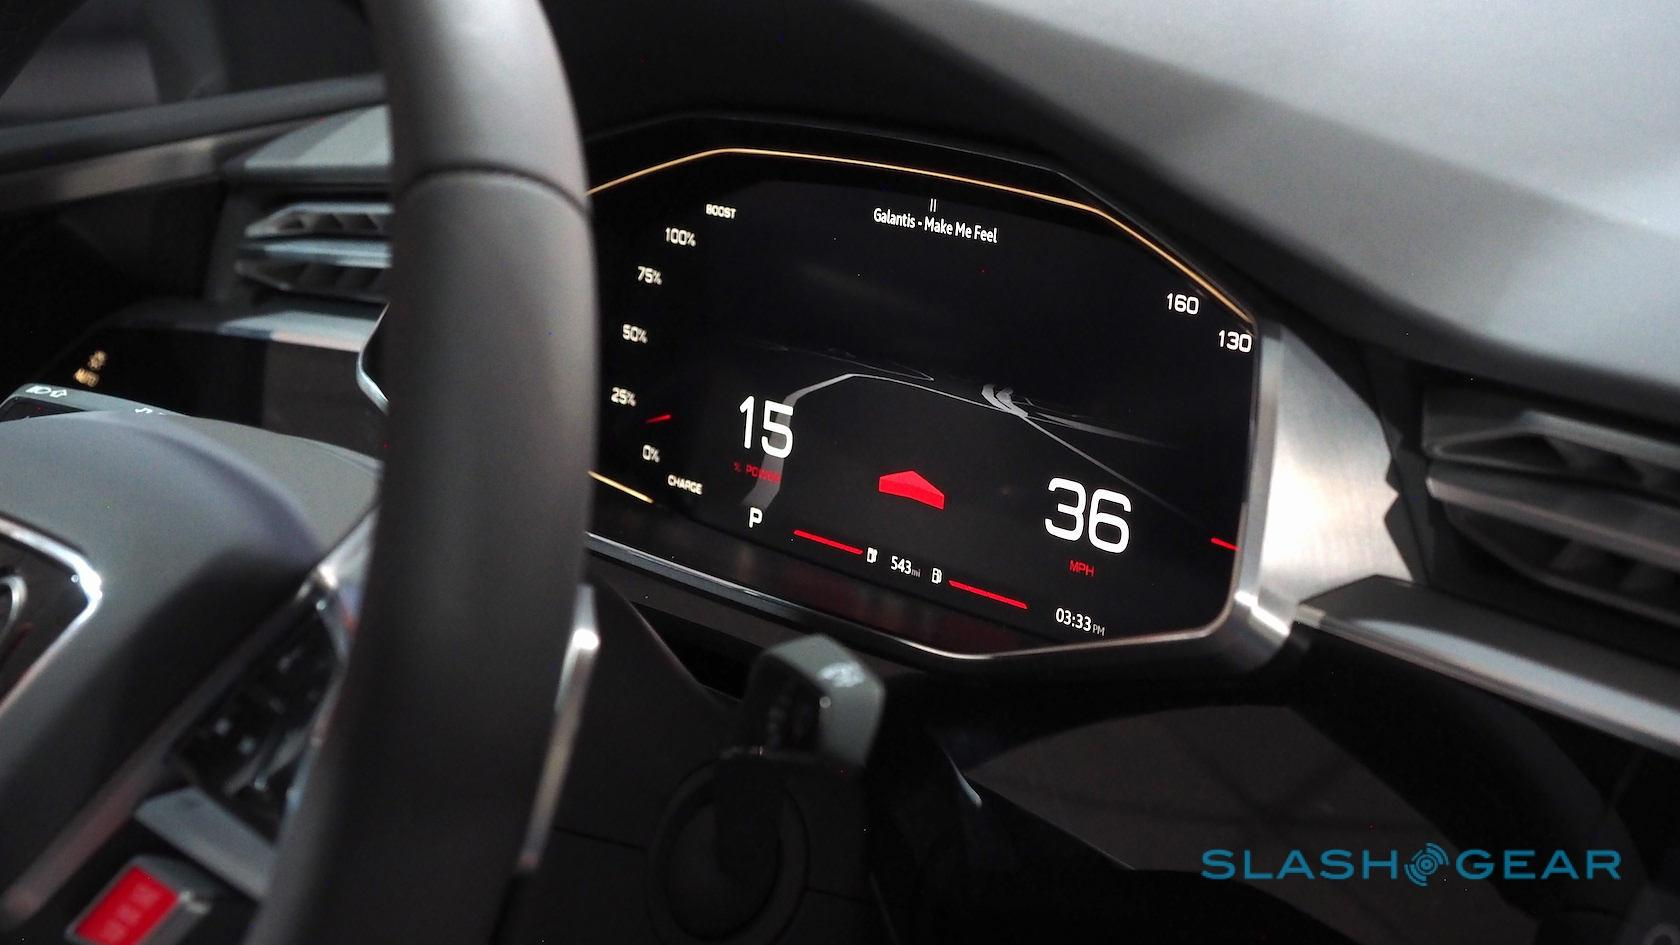 This is what Embedded Android is like in Audi's Google I/O